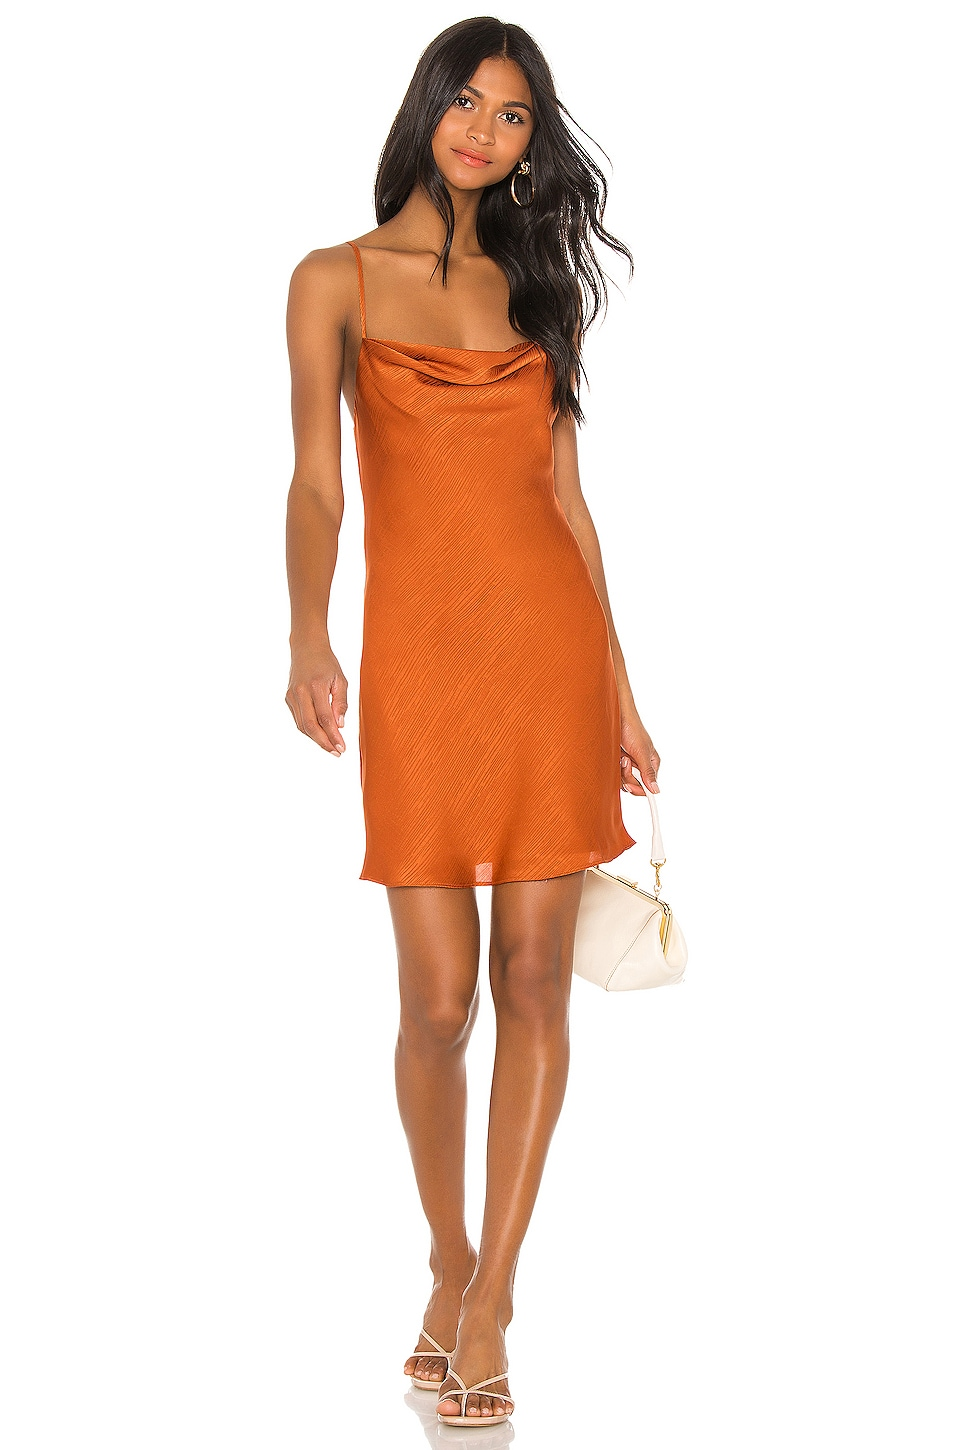 House Of Harlow 1960 X Revolve Ira Mini Dress In Burnt Orange Revolve Check out their latest campaigns at refinery29. house of harlow